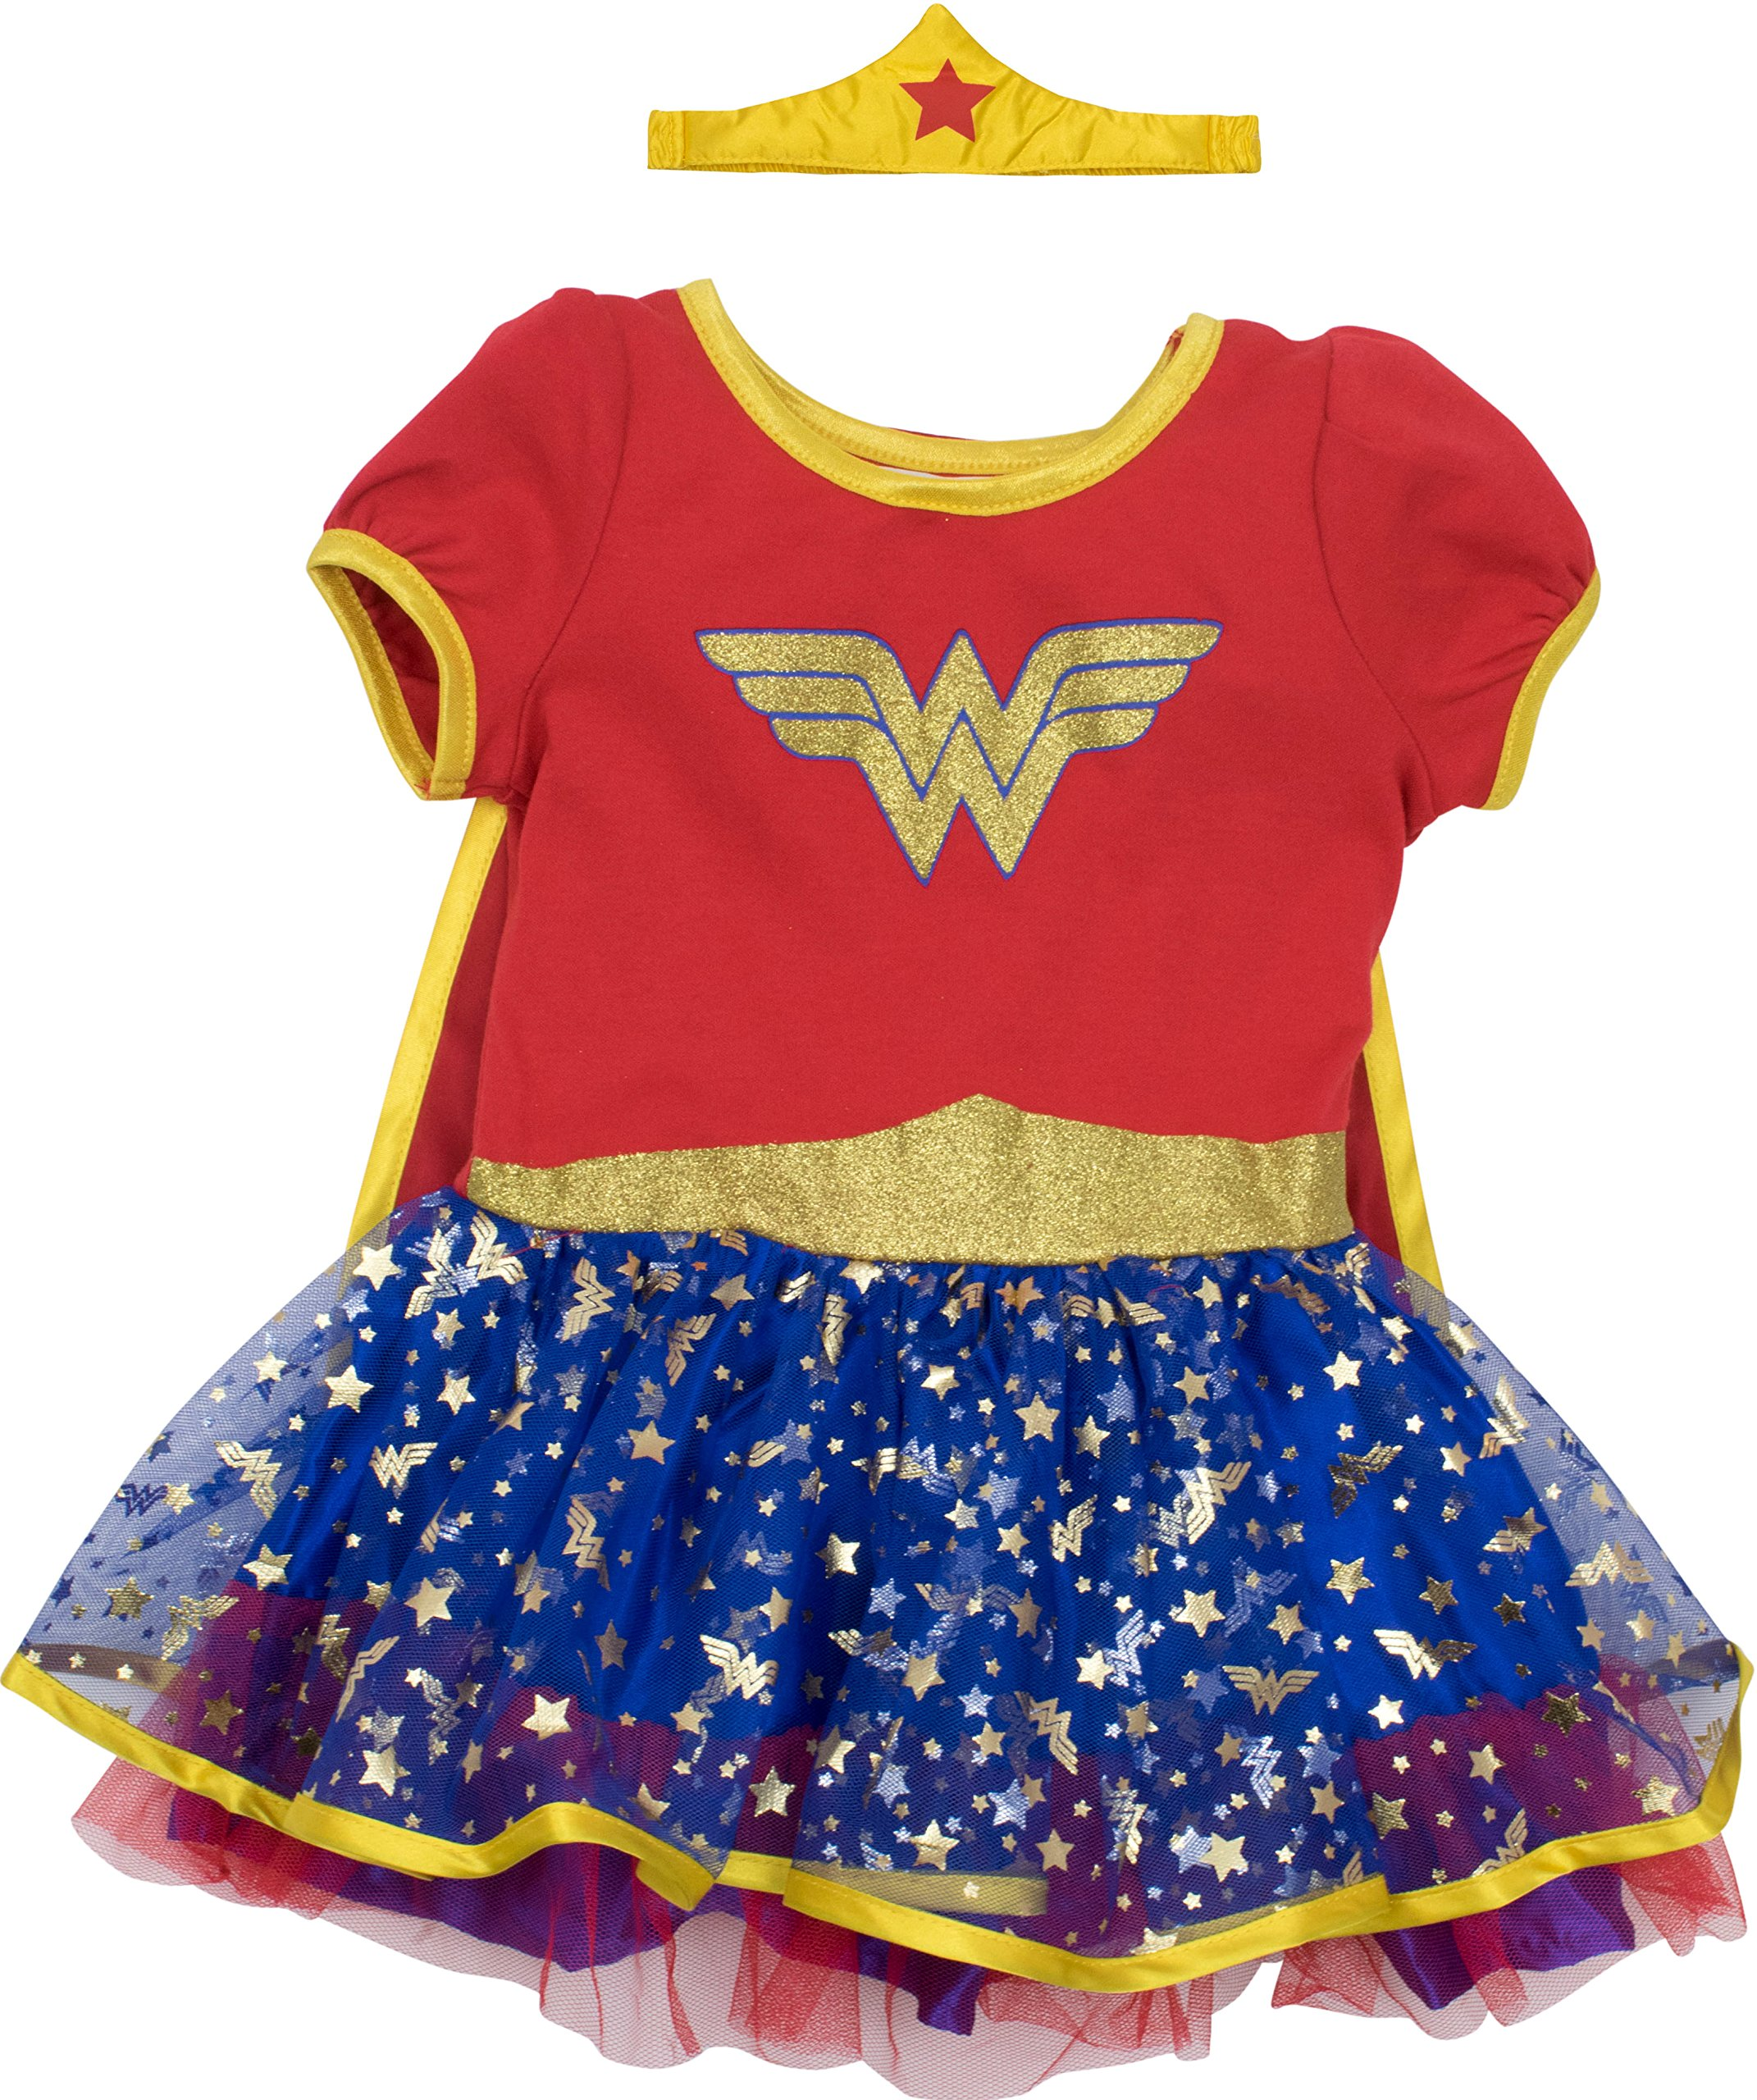 Wonder Woman Toddler Girls' Costume Dress with Gold Tiara Headband and Cape, Red (4T)